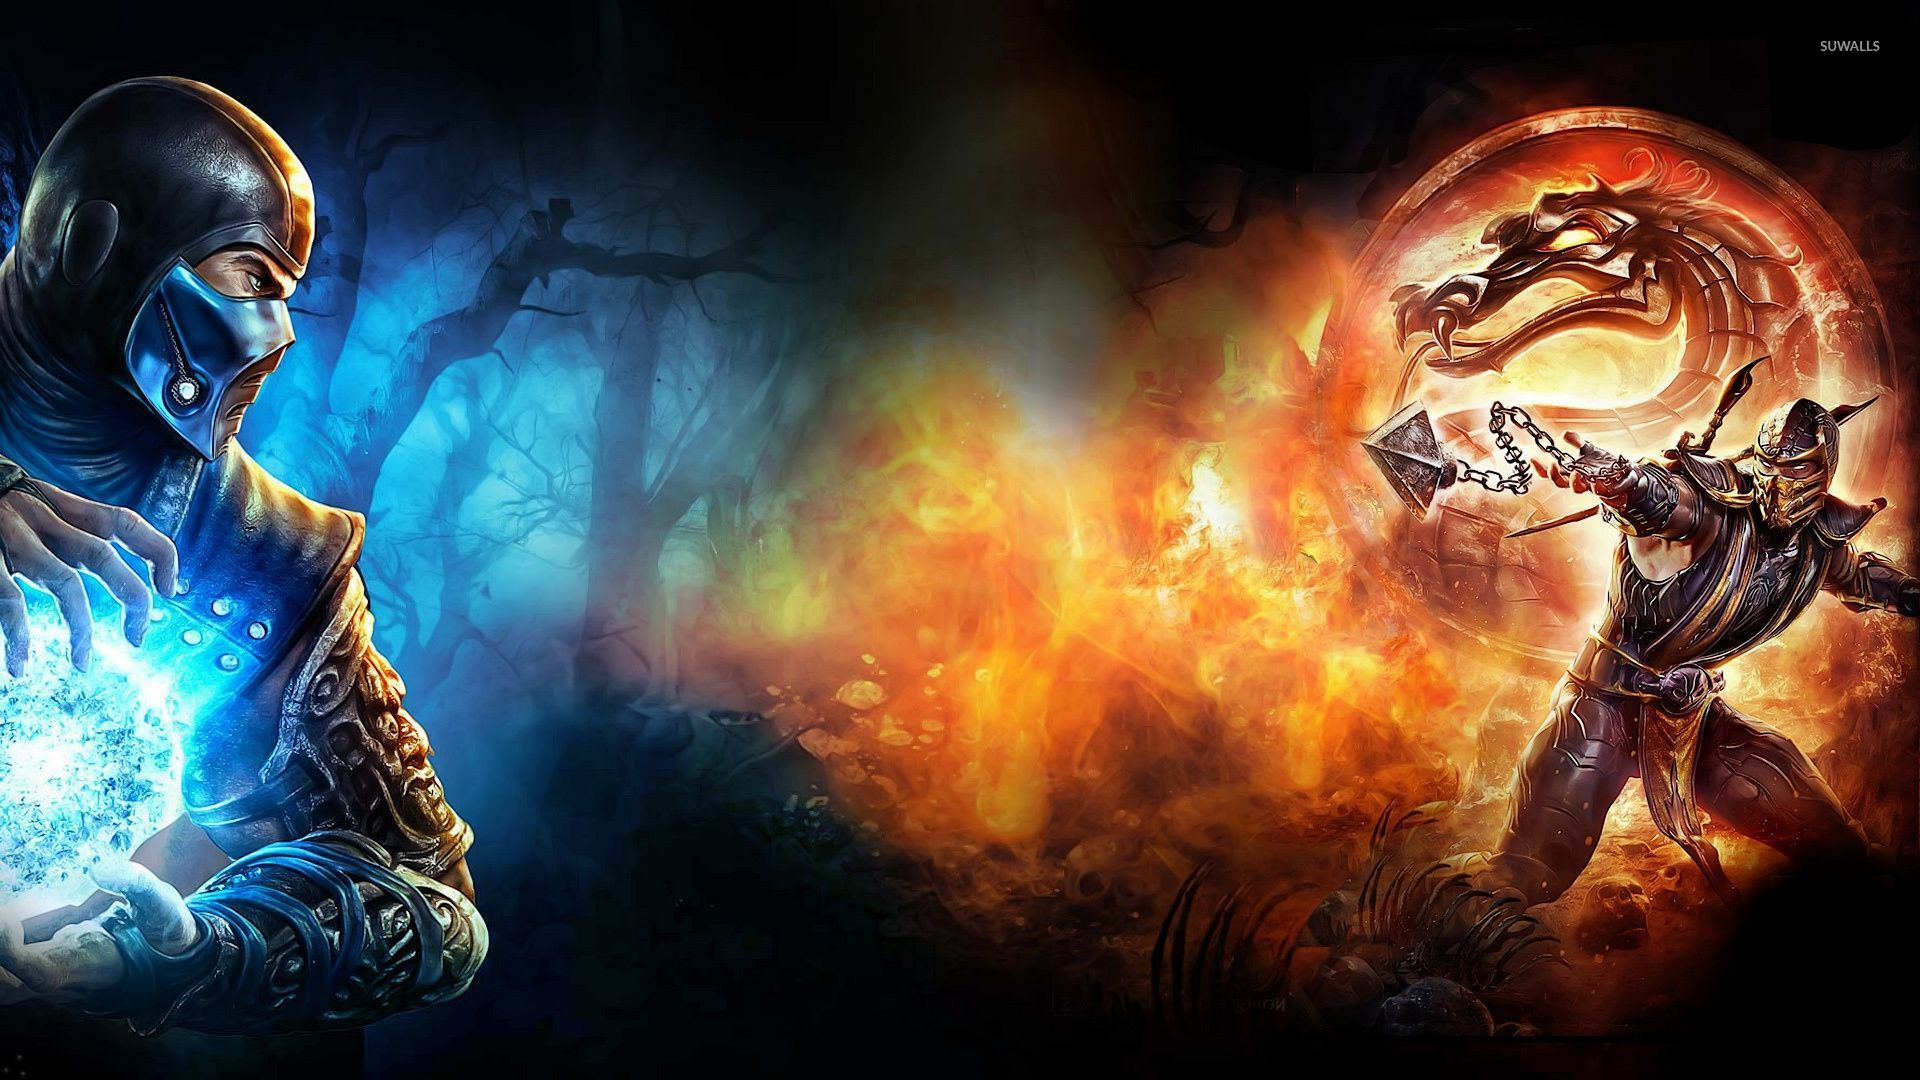 Sub Zero Vs Scorpion In Mortal Kombat X Wallpaper Game